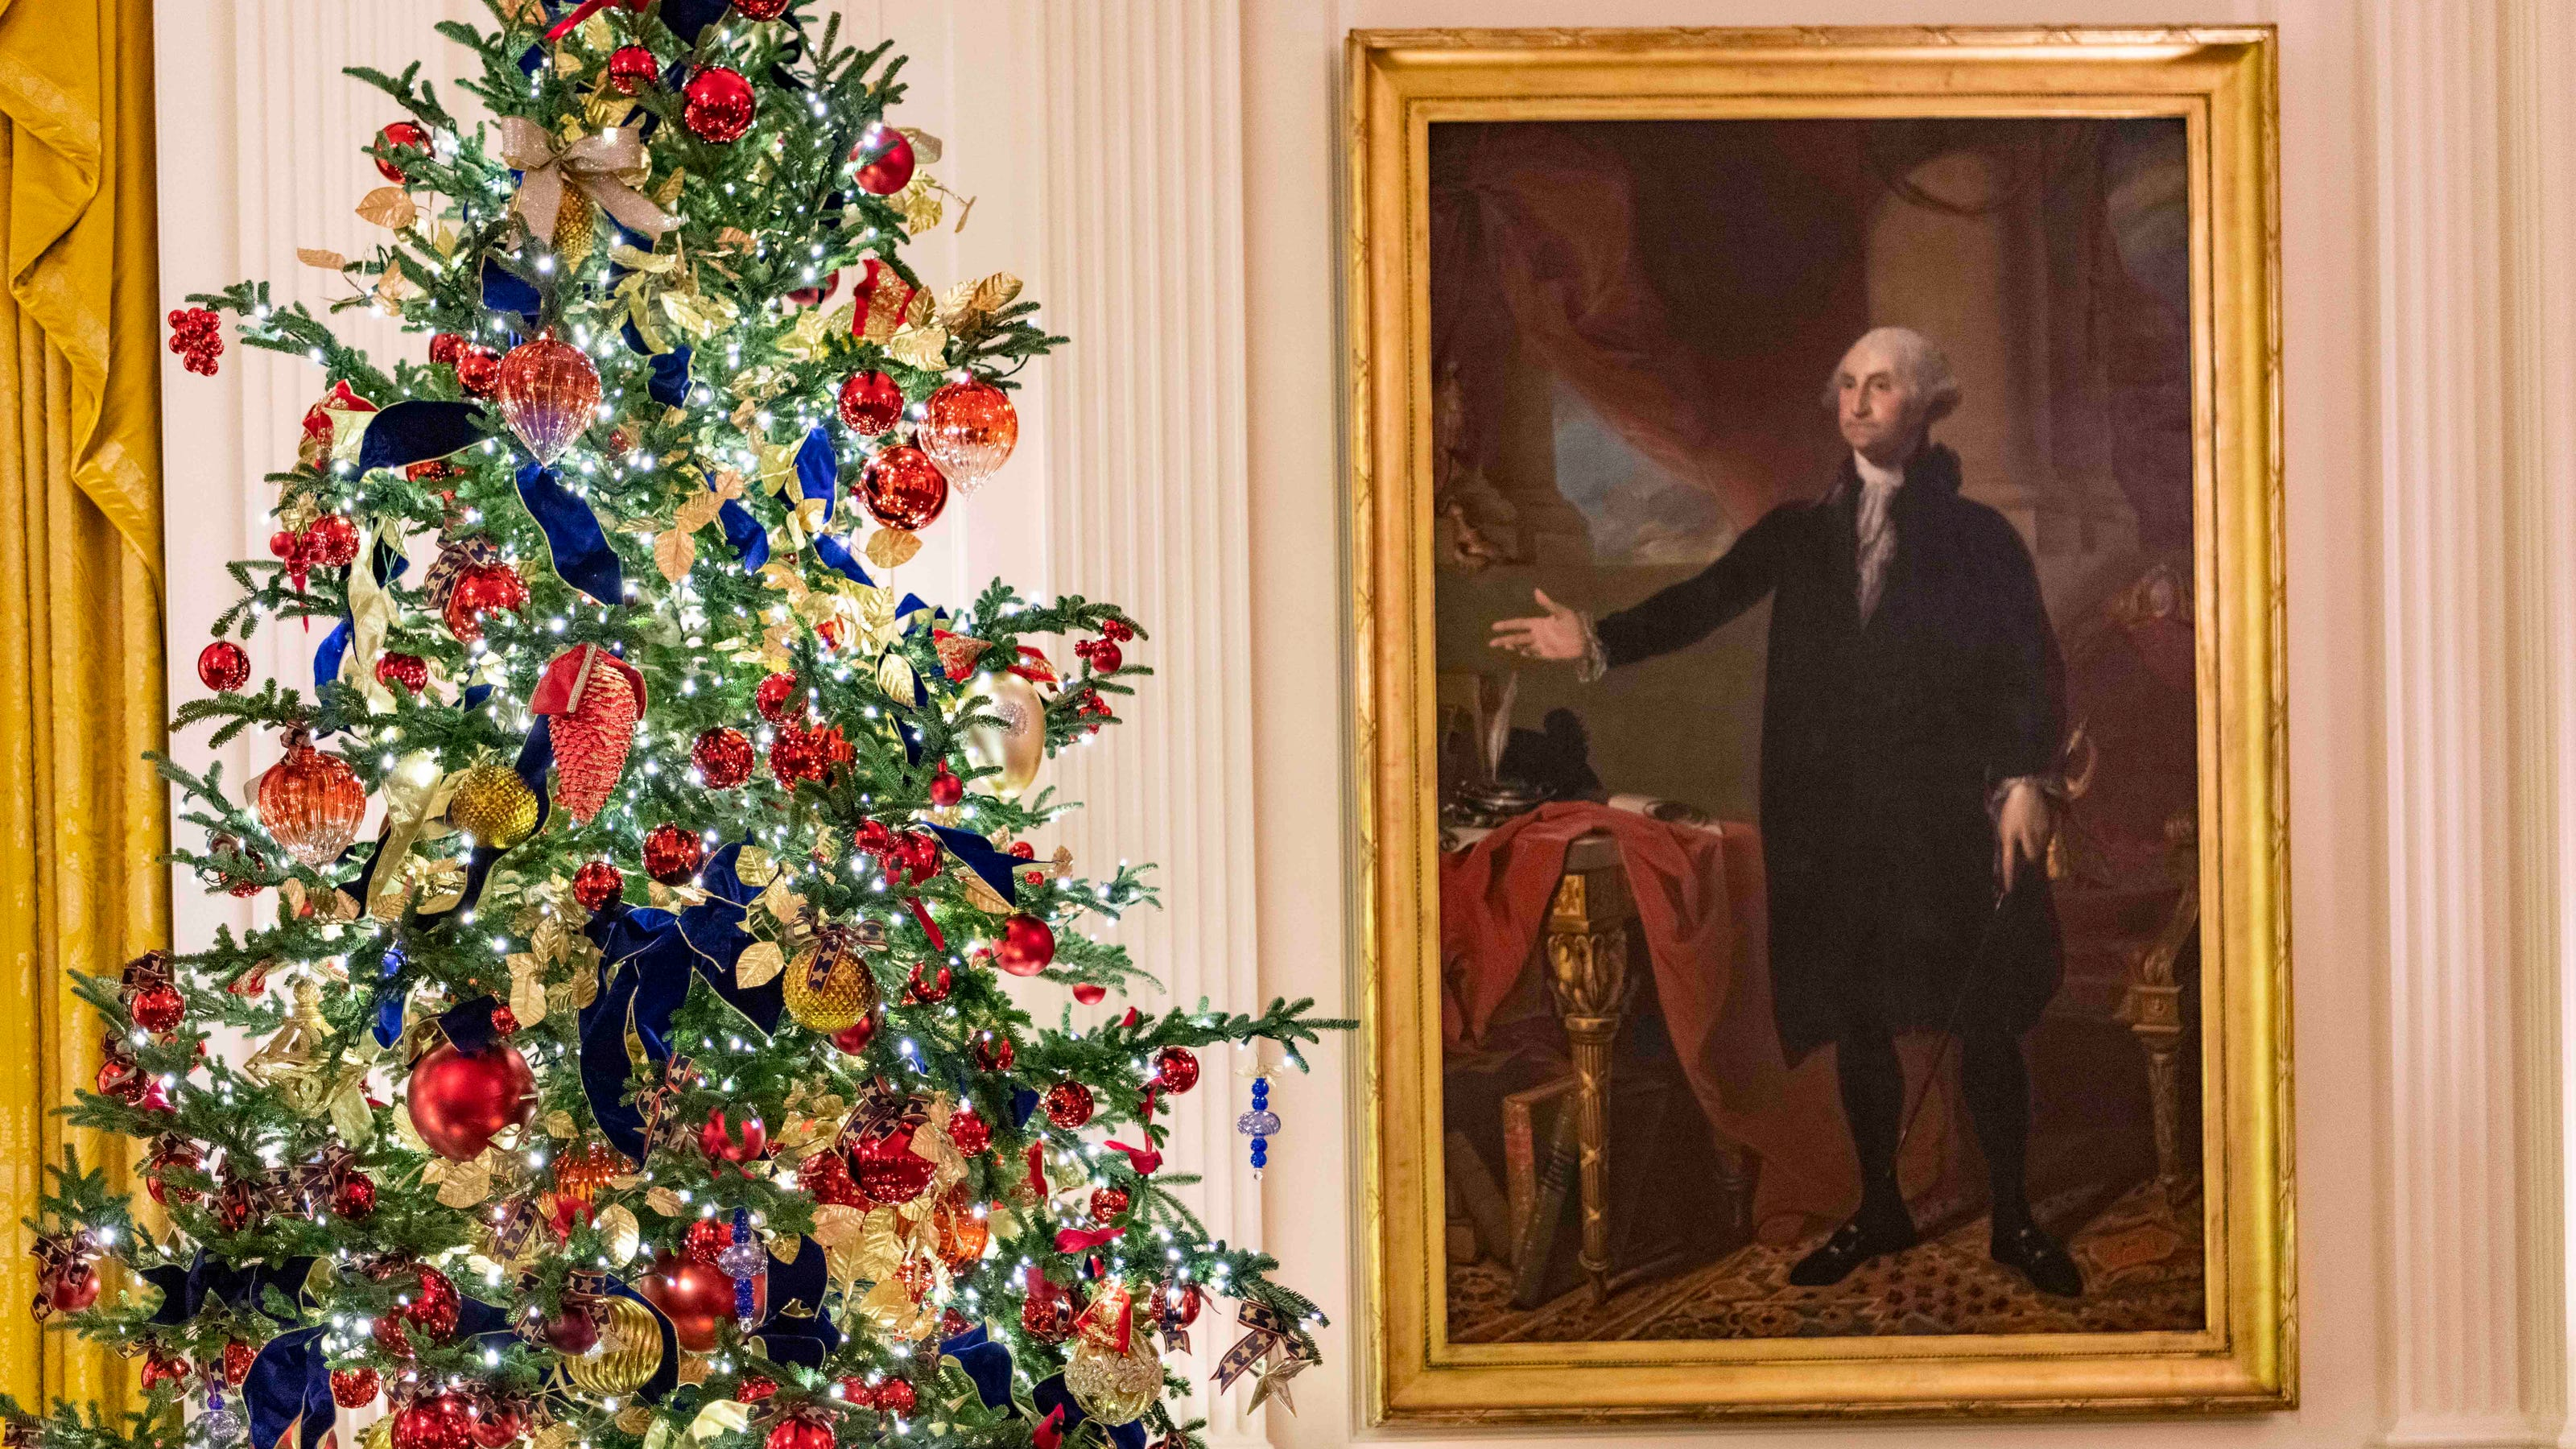 White House Christmas 2020 Handmaids White House Christmas 2019: Melania Trump unveils holiday decorations